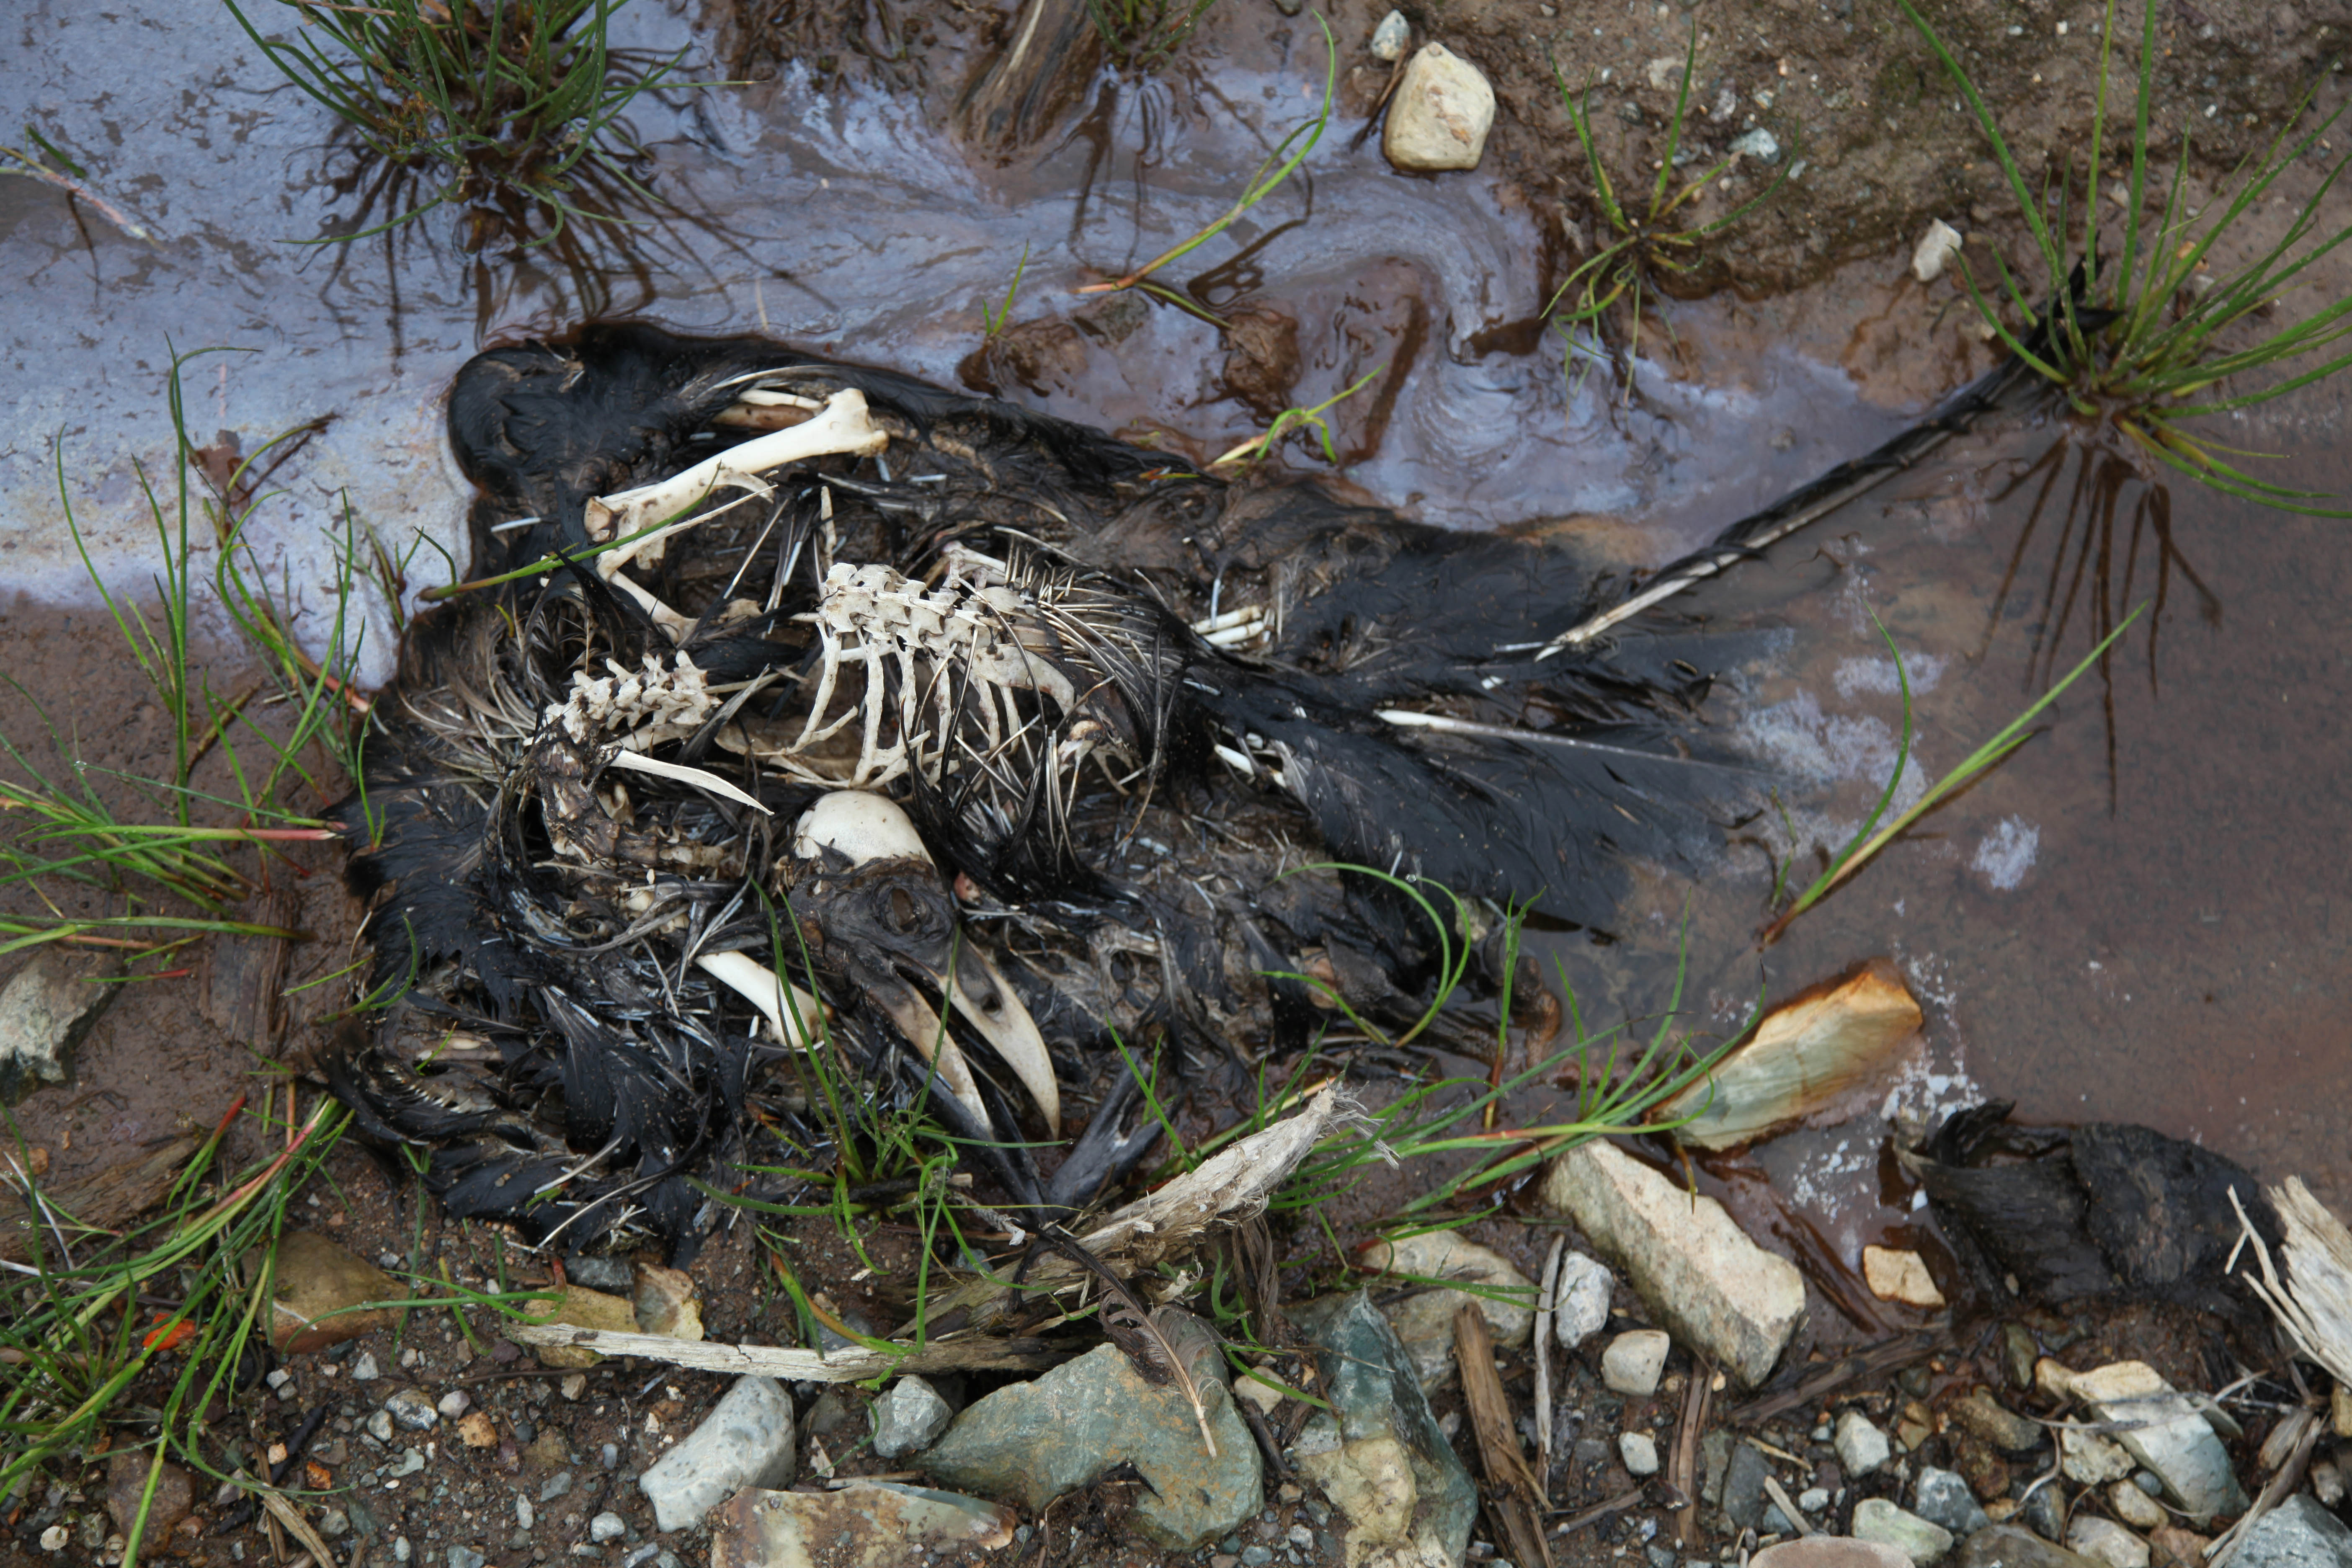 Dead birds found around cellular tower in Conception Bay South, Canada